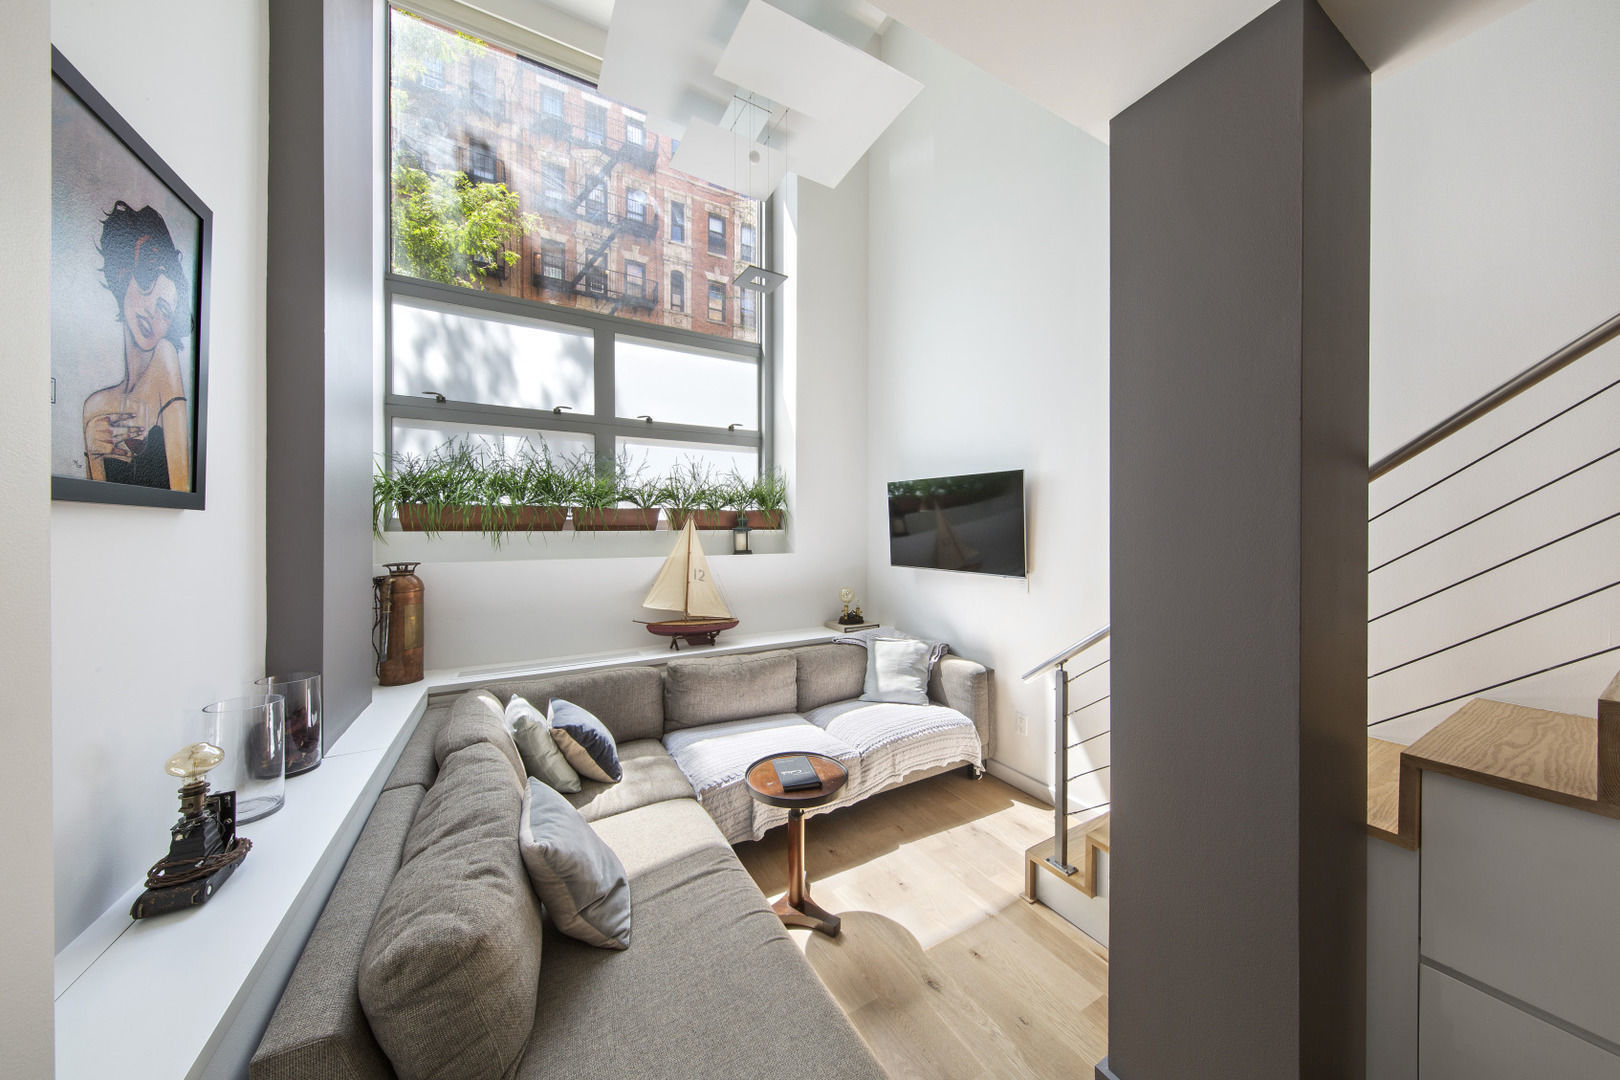 Apartment for sale at 425 East 13th Street, Apt 1-N